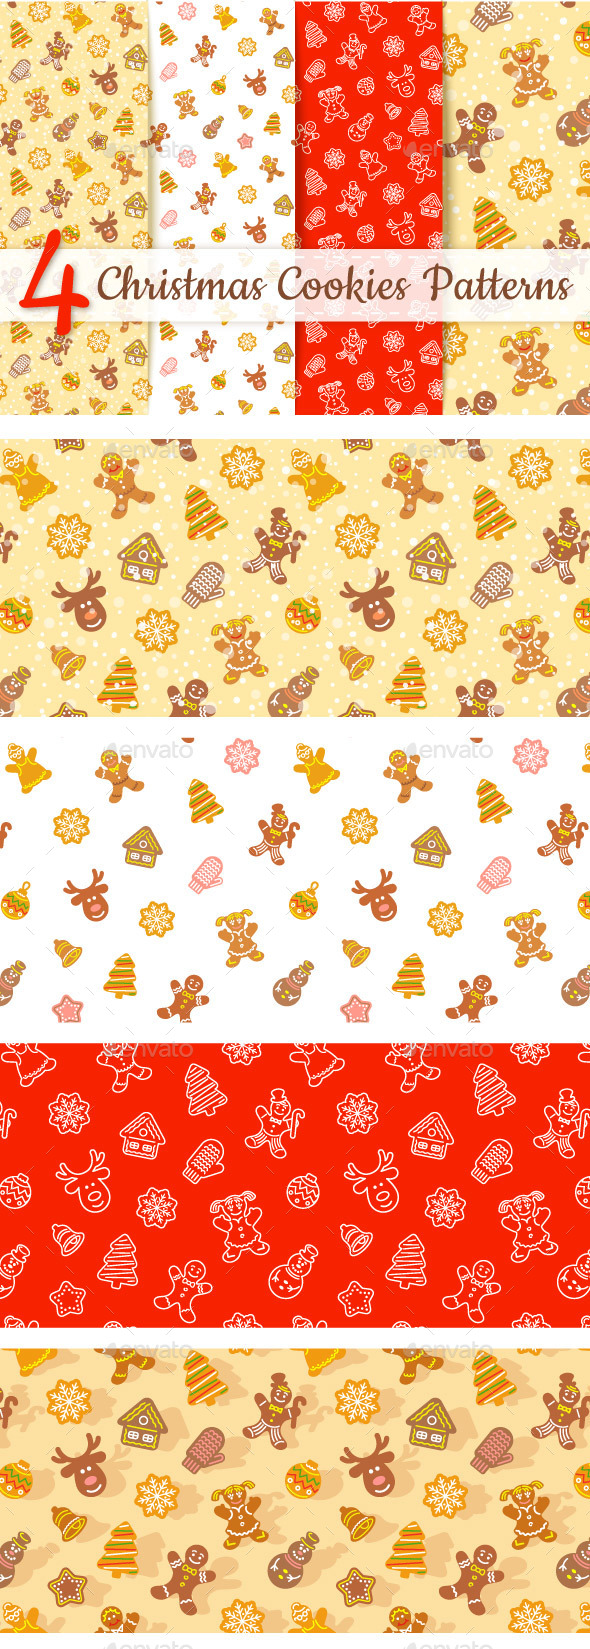 Christmas Cookies Seamless  Background Patterns - Christmas Seasons/Holidays